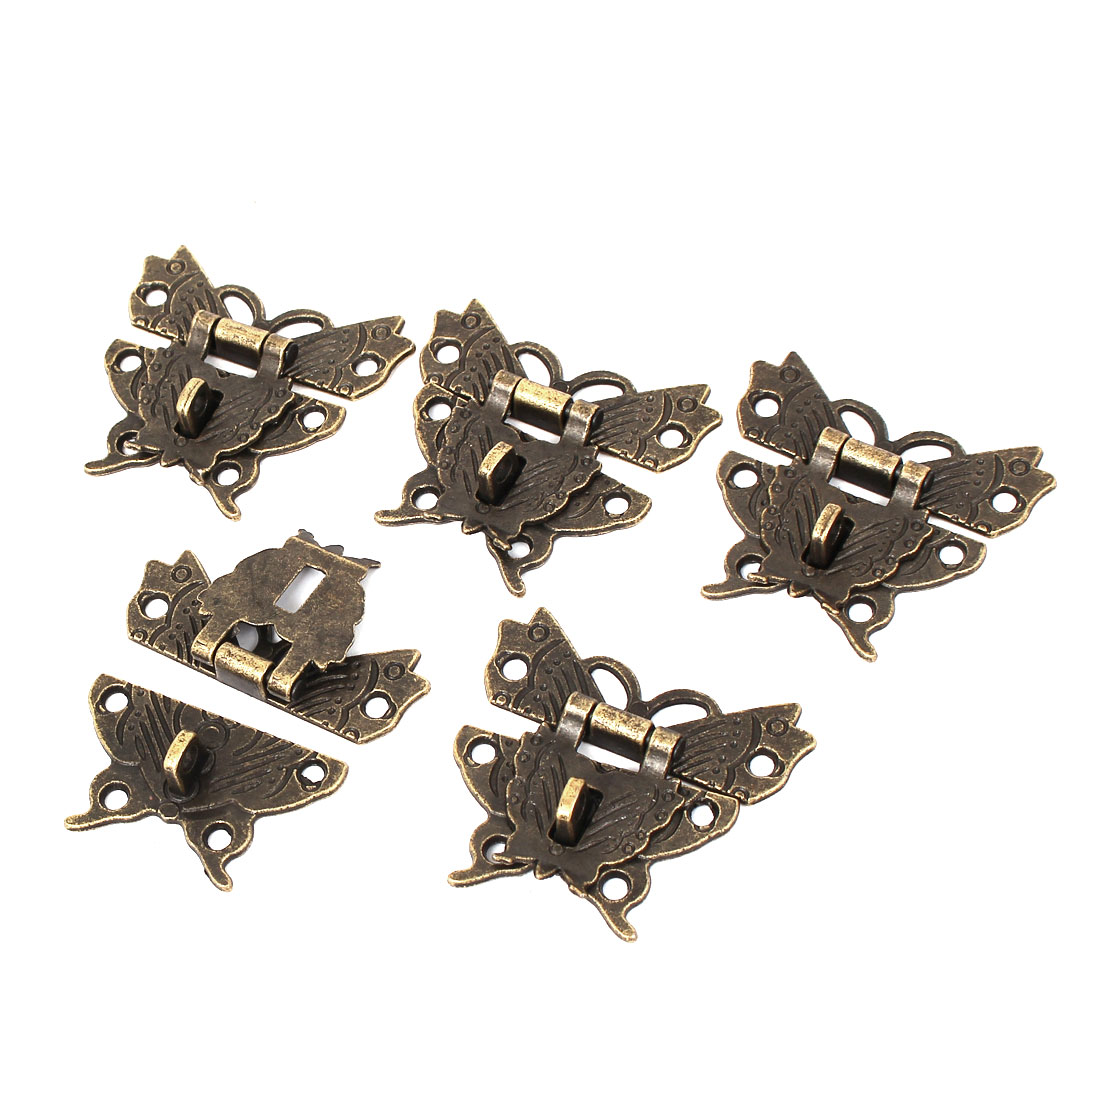 Wooden Case Box Butterfly Shape Hasp Lock Latch Bronze Tone 5pcs